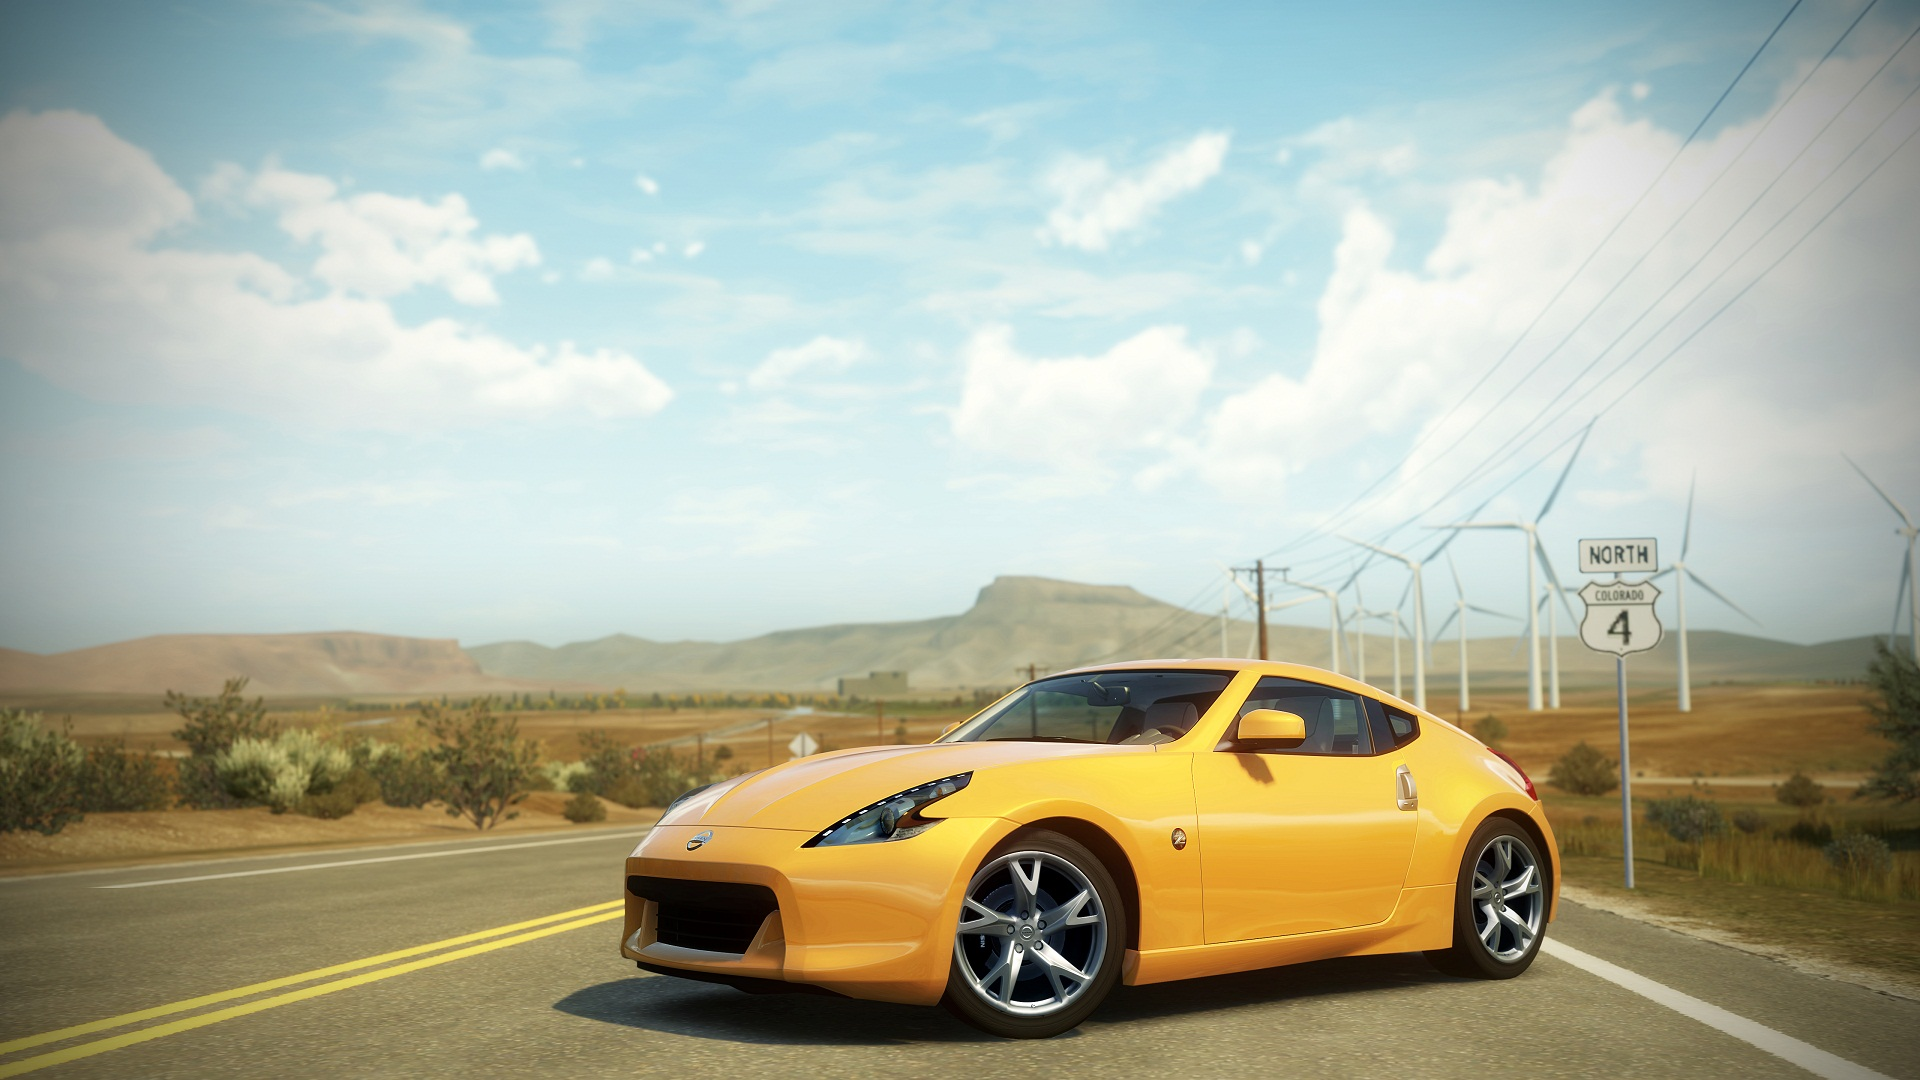 Forza Horizon 3 Wallpaper Hd Forza Horizon Wallpapers Pictures Images